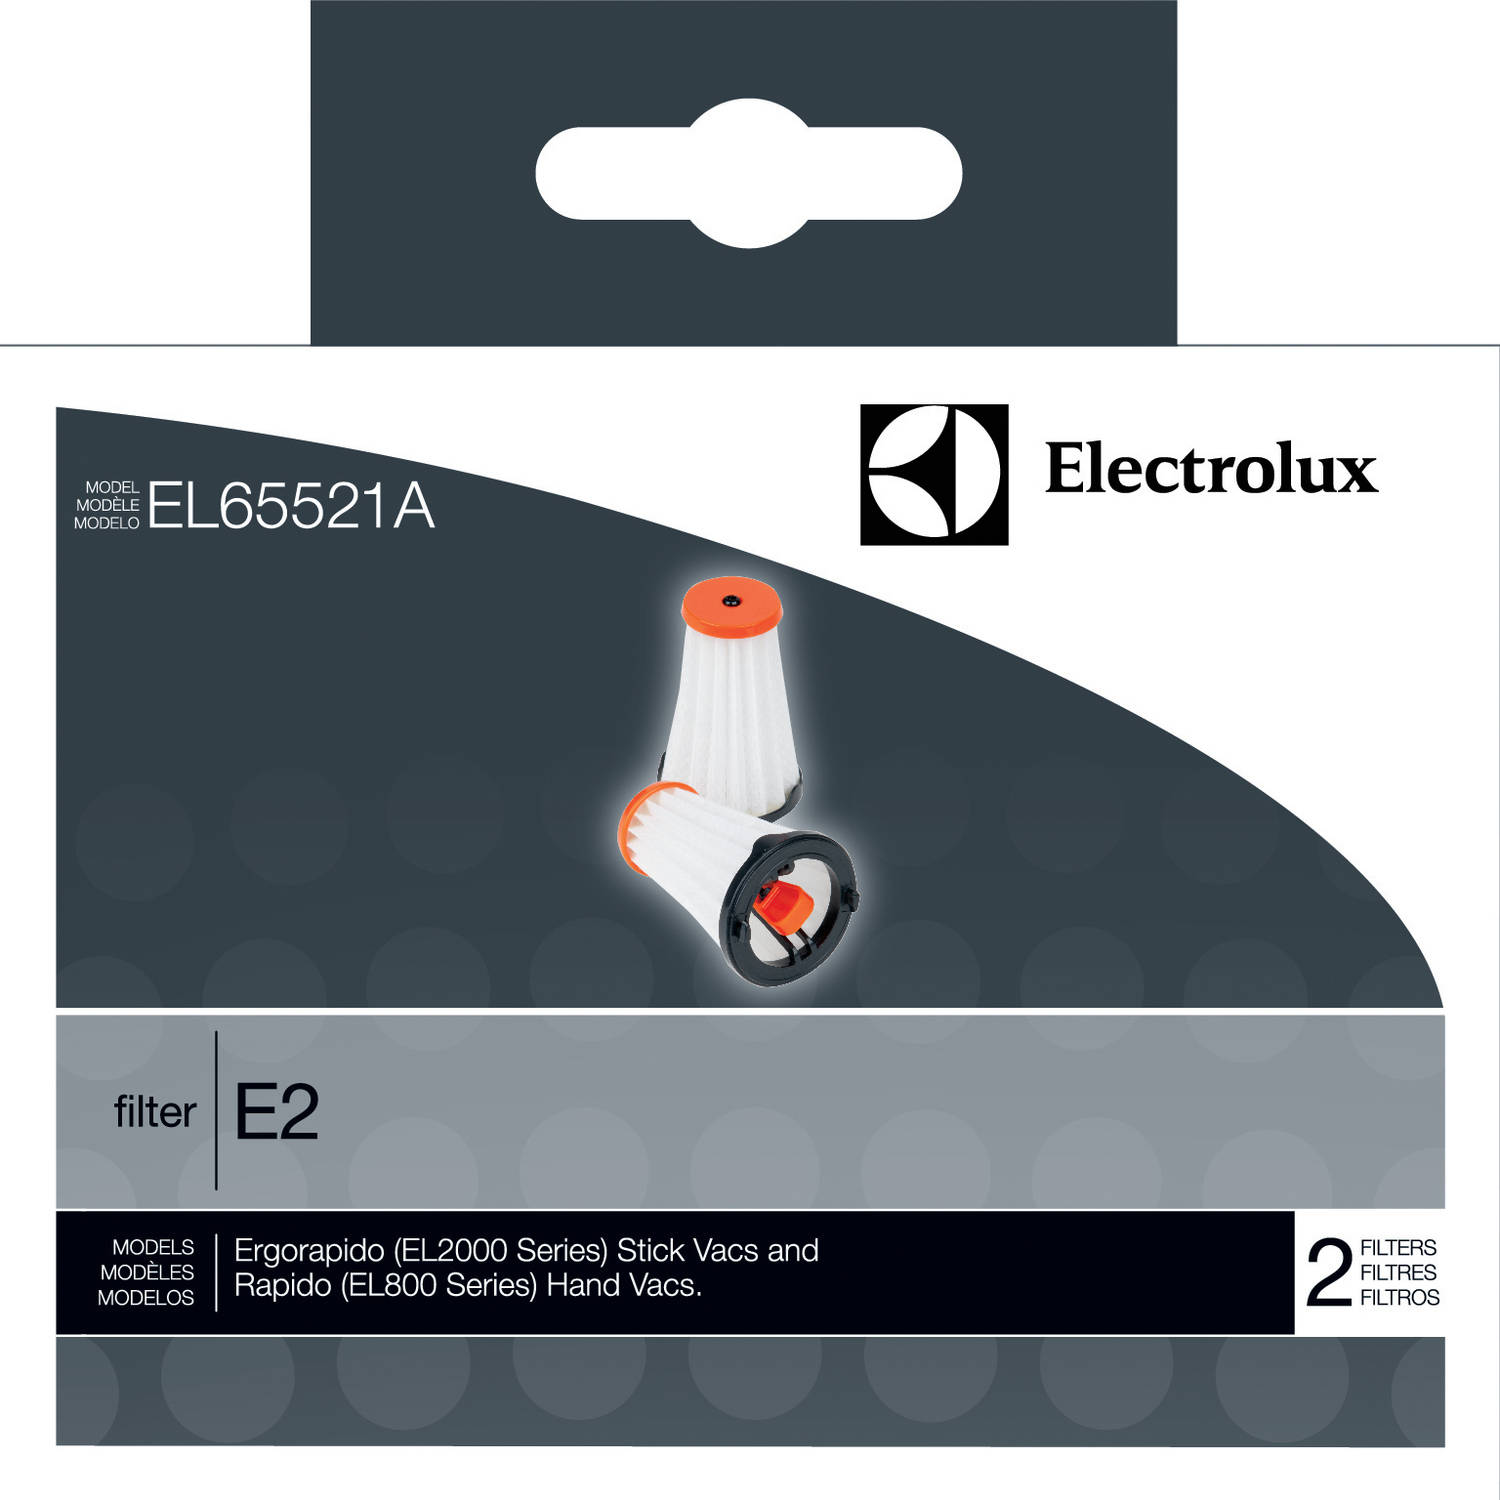 Electrolux Ergorapido EL2000 Series and Rapdio Vacuum Filter, Pack of 2